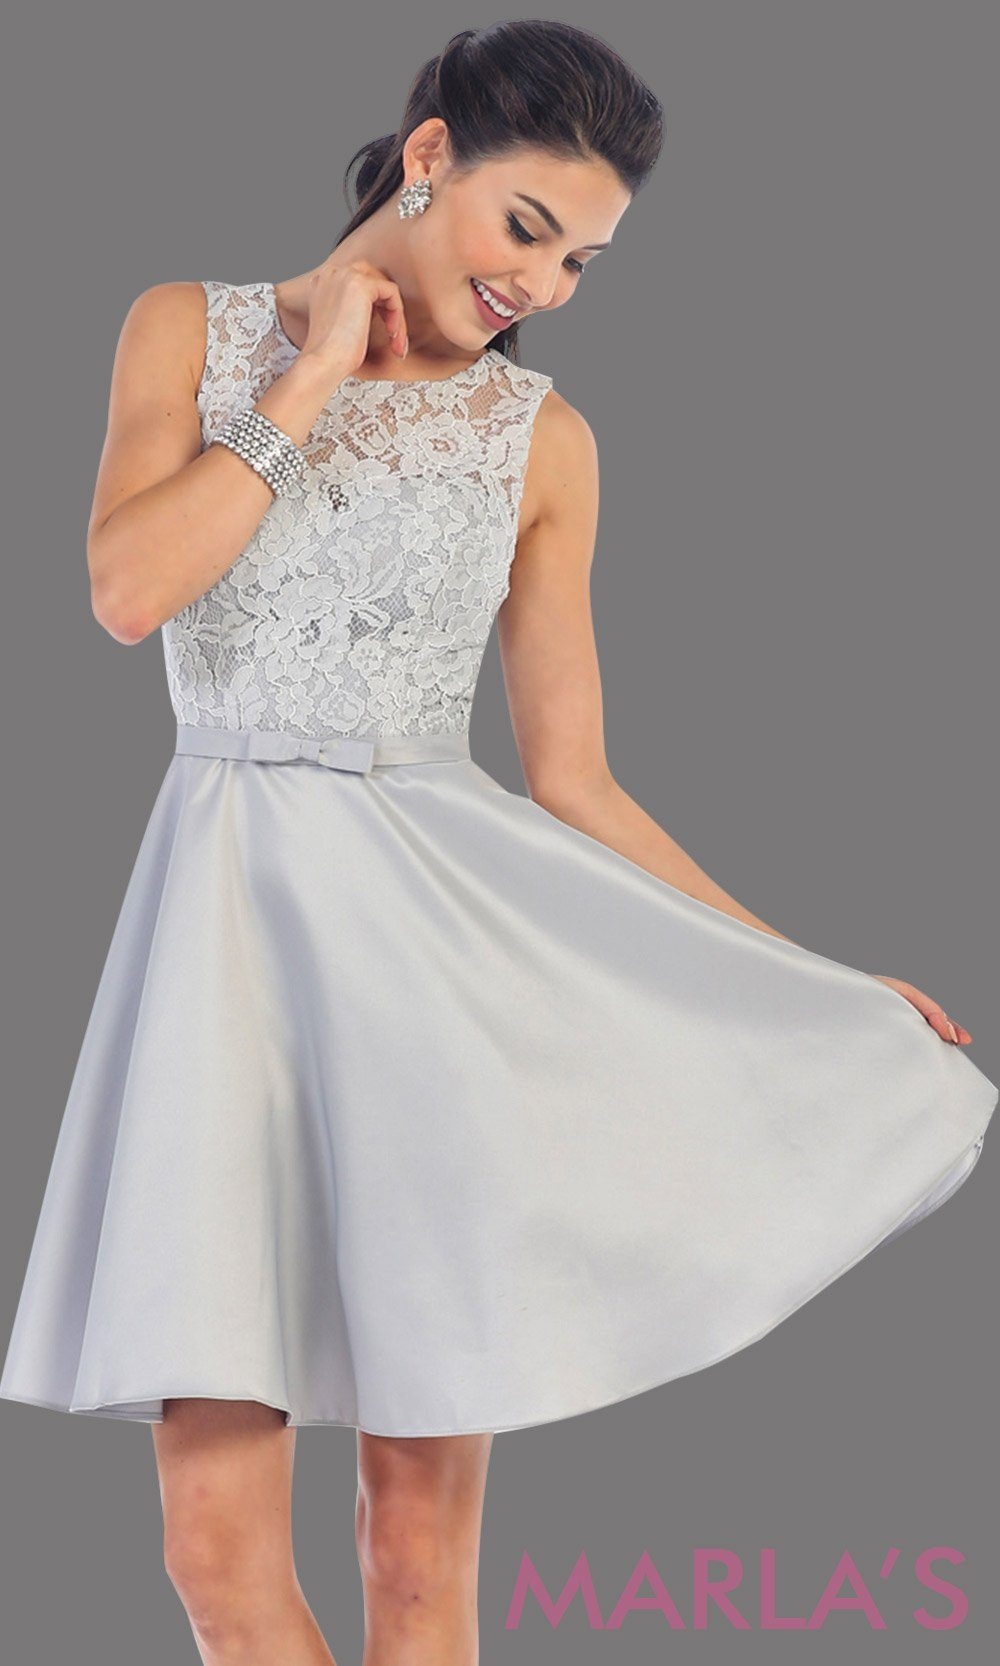 Short simple  semi formal ligth gray dress with lace bodice and satin skirt. Light silver dress is perfect for grade 8 grad, graduation, short prom, damas quinceanera, confirmation. Available in plus sizes.